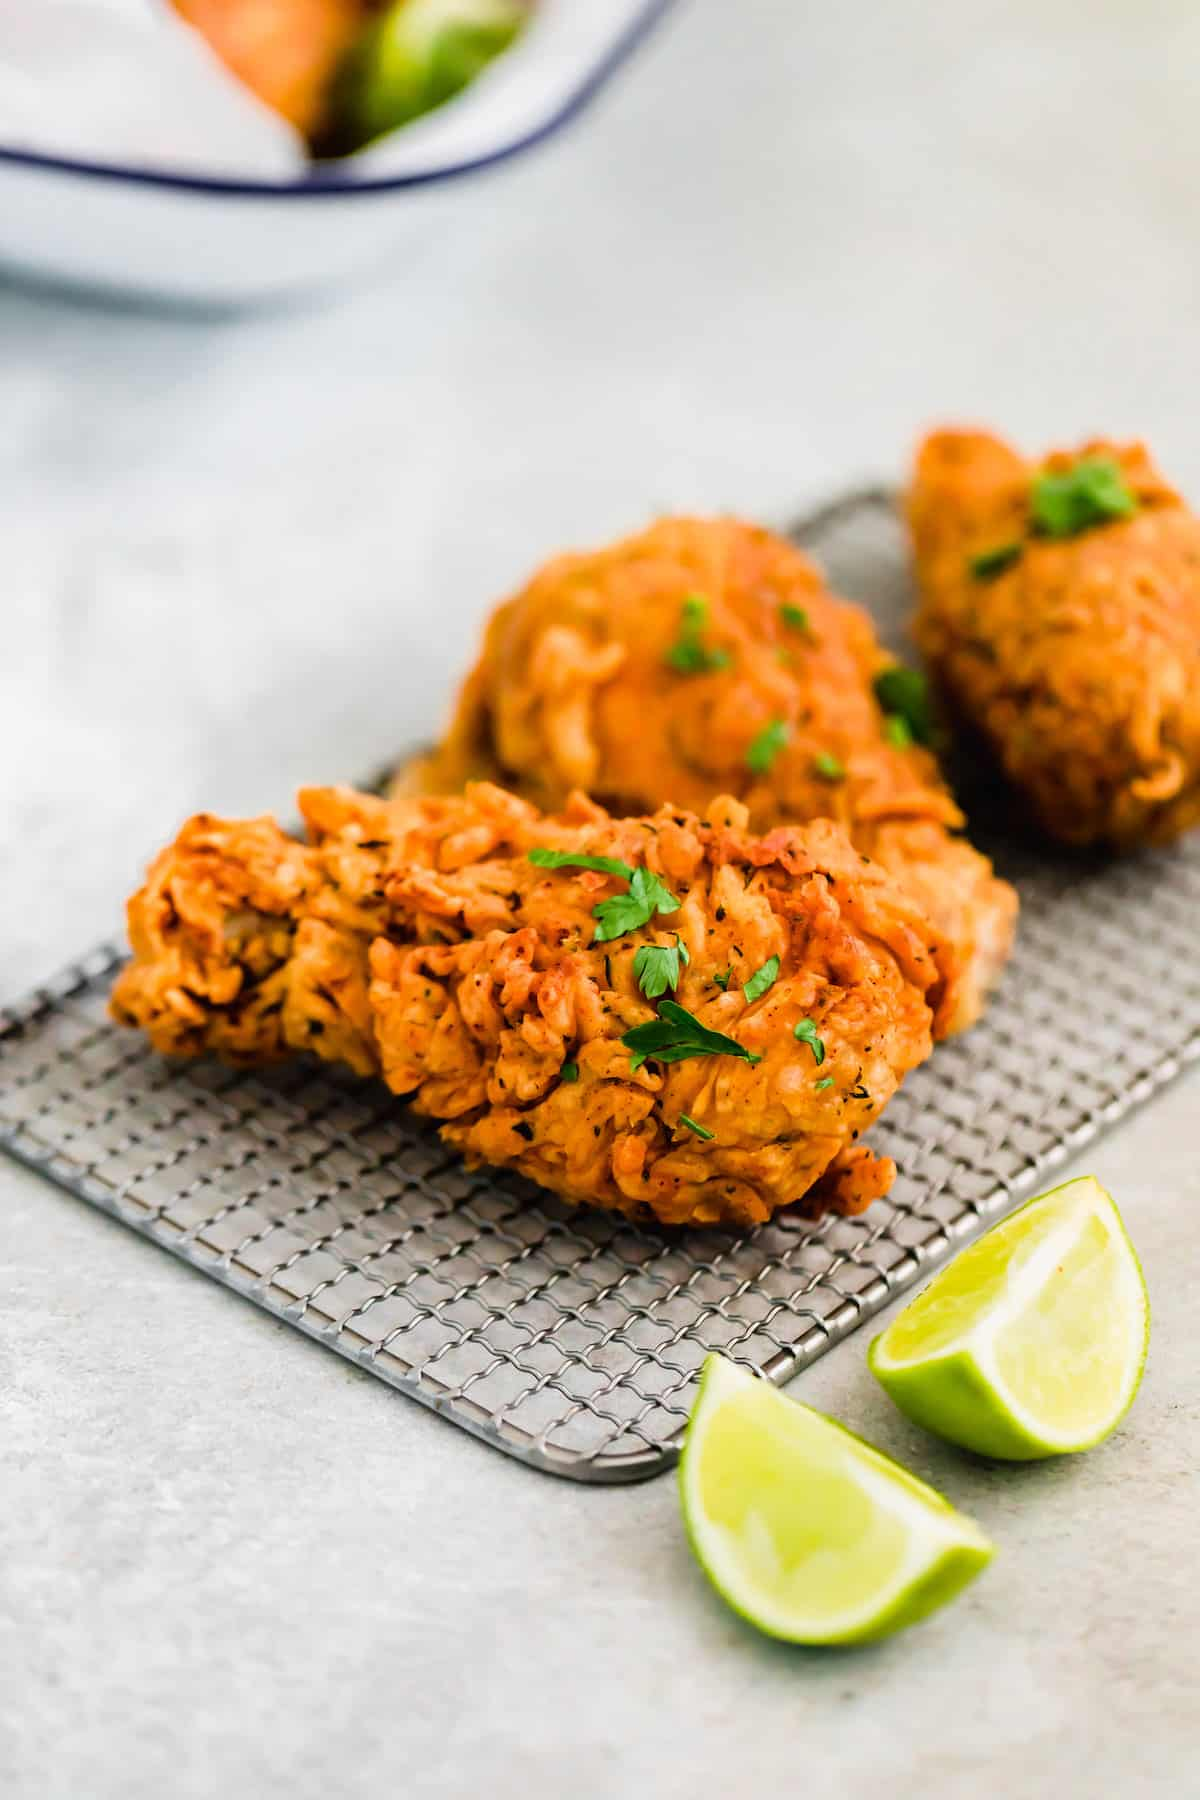 Three Pieces of Buttermilk Fried Chicken Garnished with Chopped Parsley